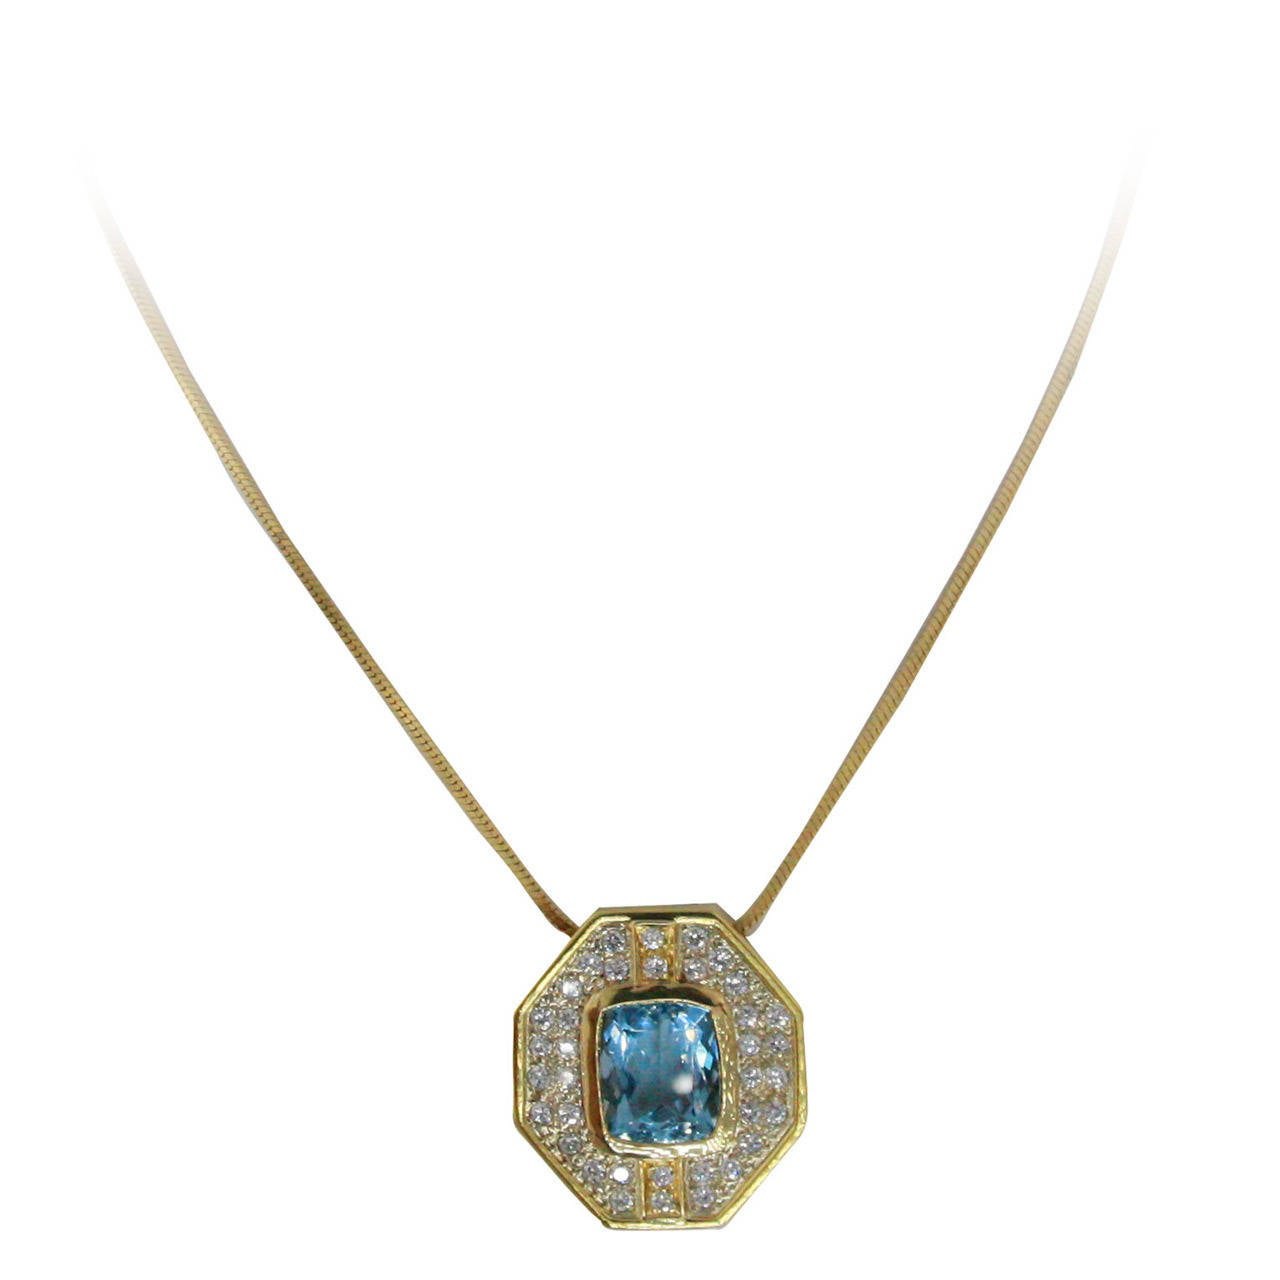 Pendant with 36 round diamonds weighing approximately 0.75 carats surrounding an Aquamarine measuring 12.5 x 9.5 mm with an estimated weight of 5.5 carats. Pendant is suspended from an 18 Karat Yellow Gold 16 inch chain.